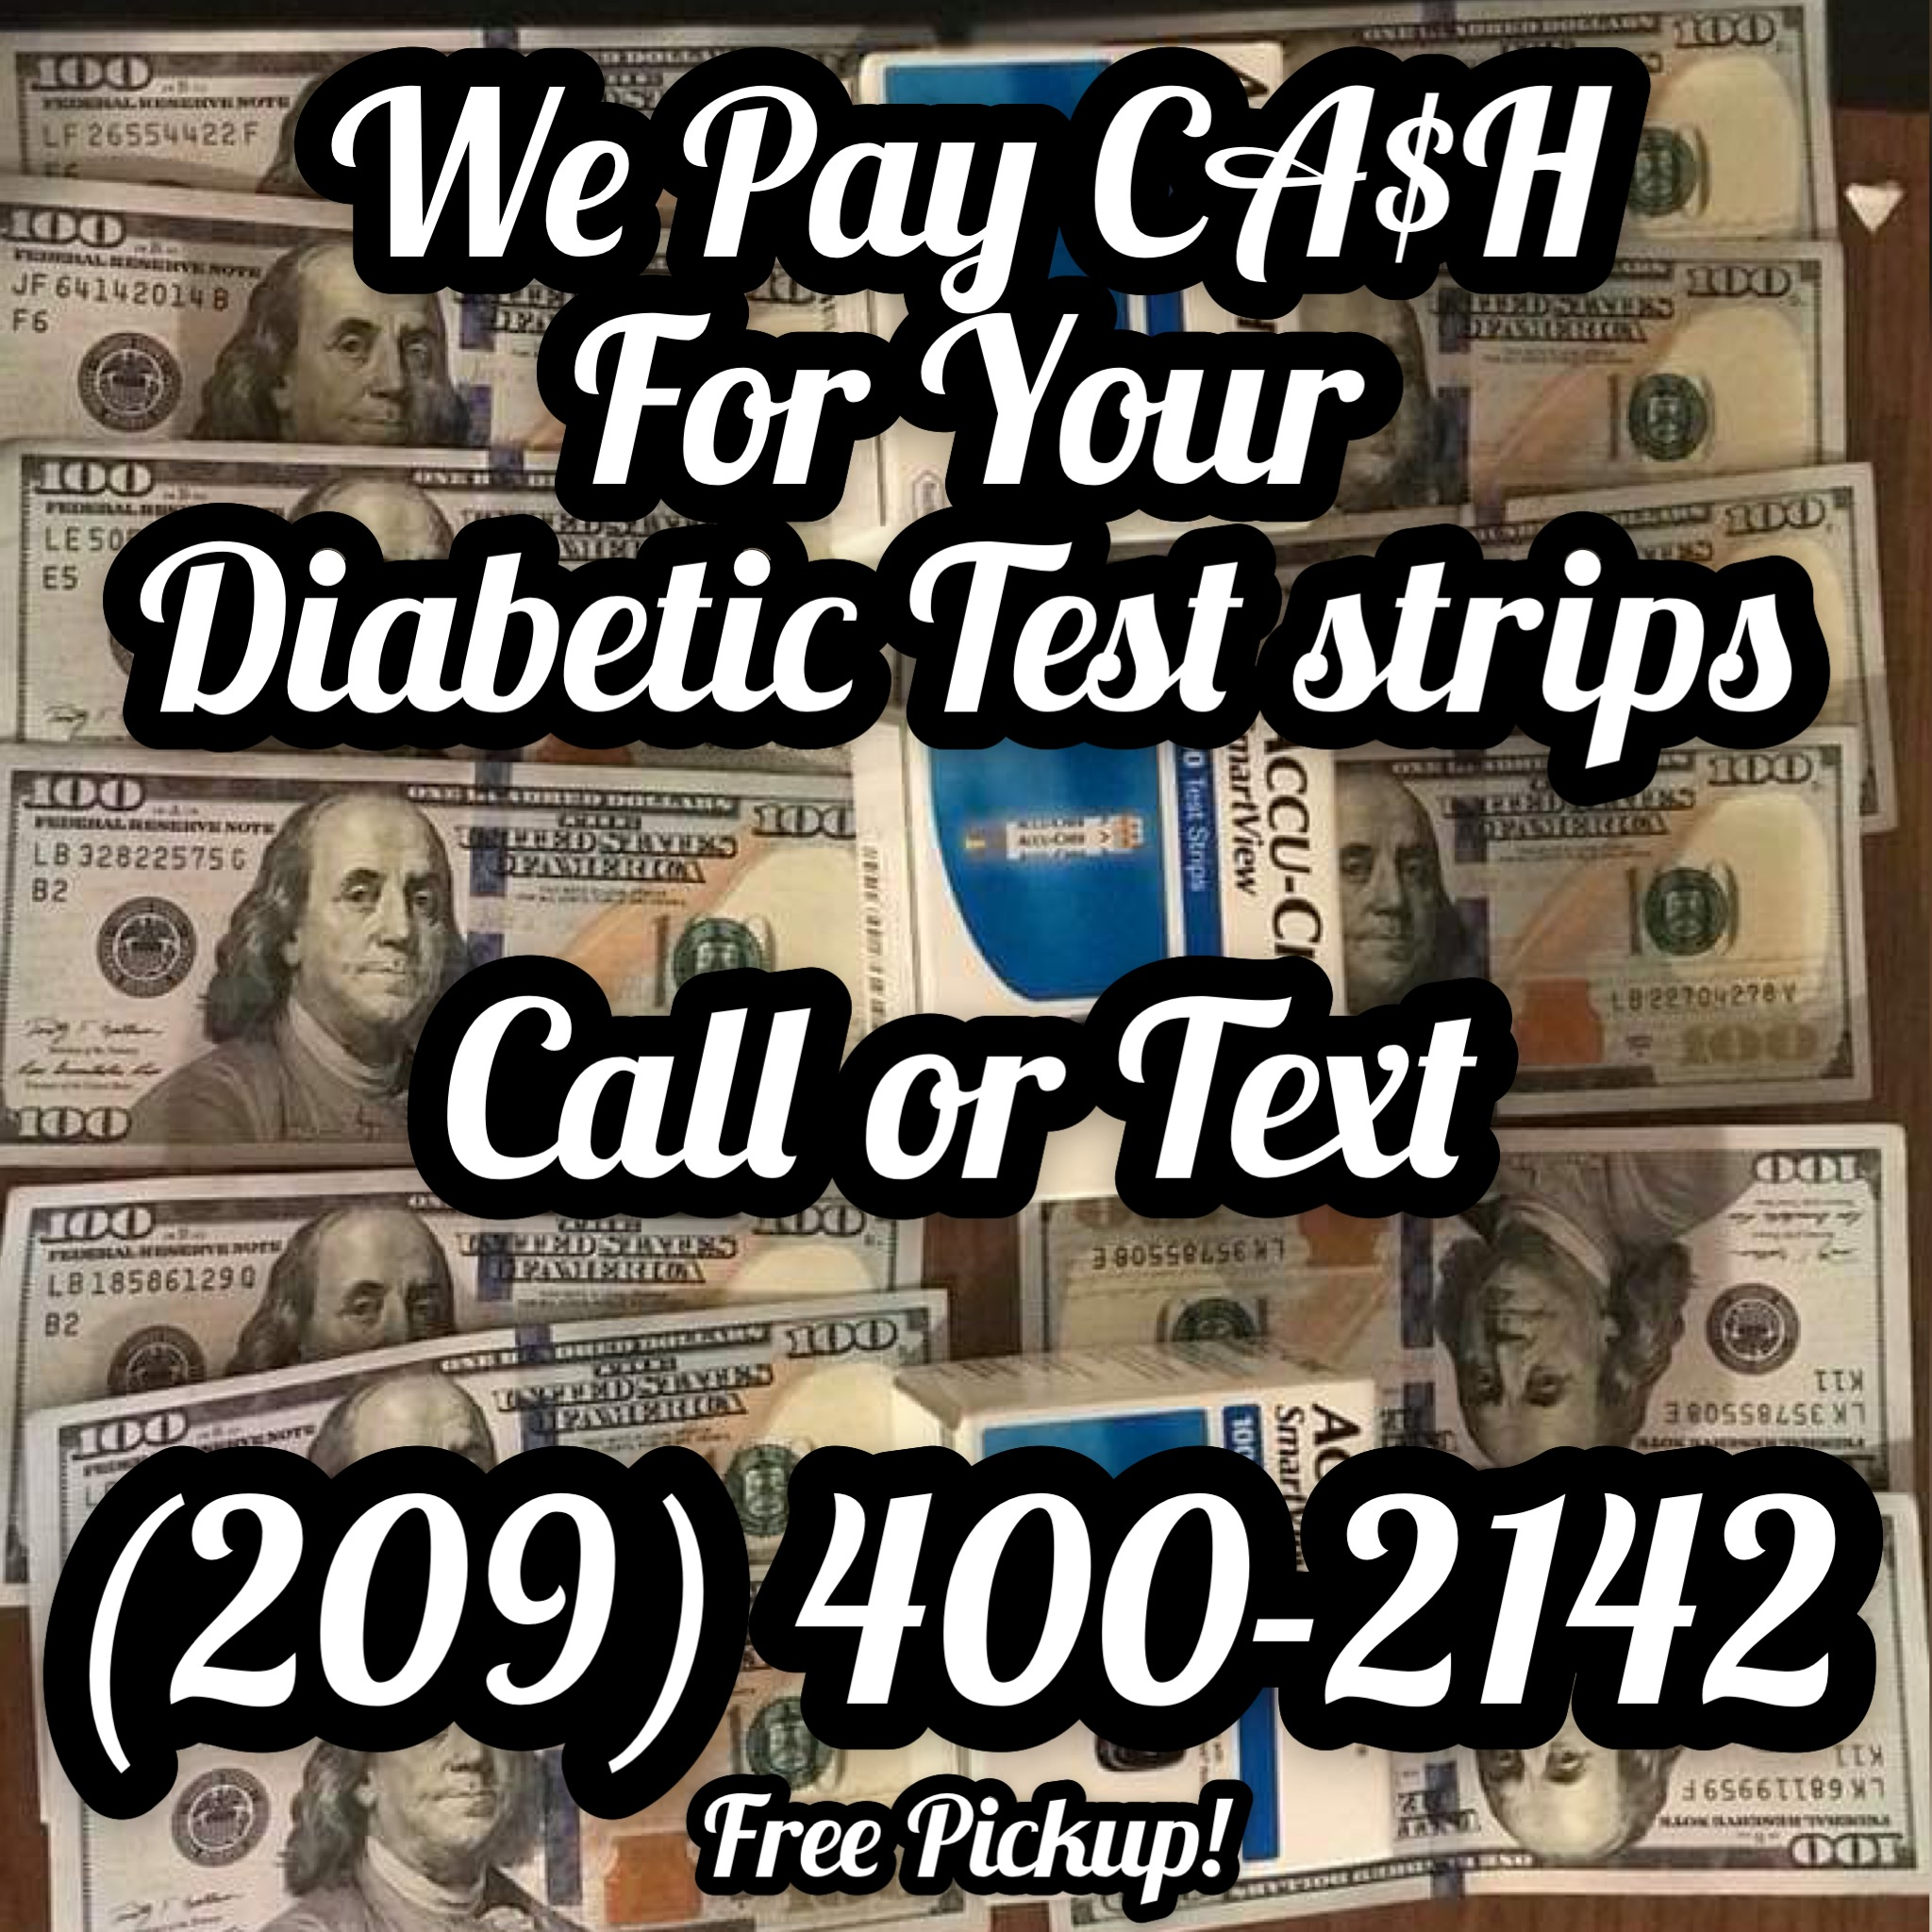 Paying CASH for your Diabetic Test Strips